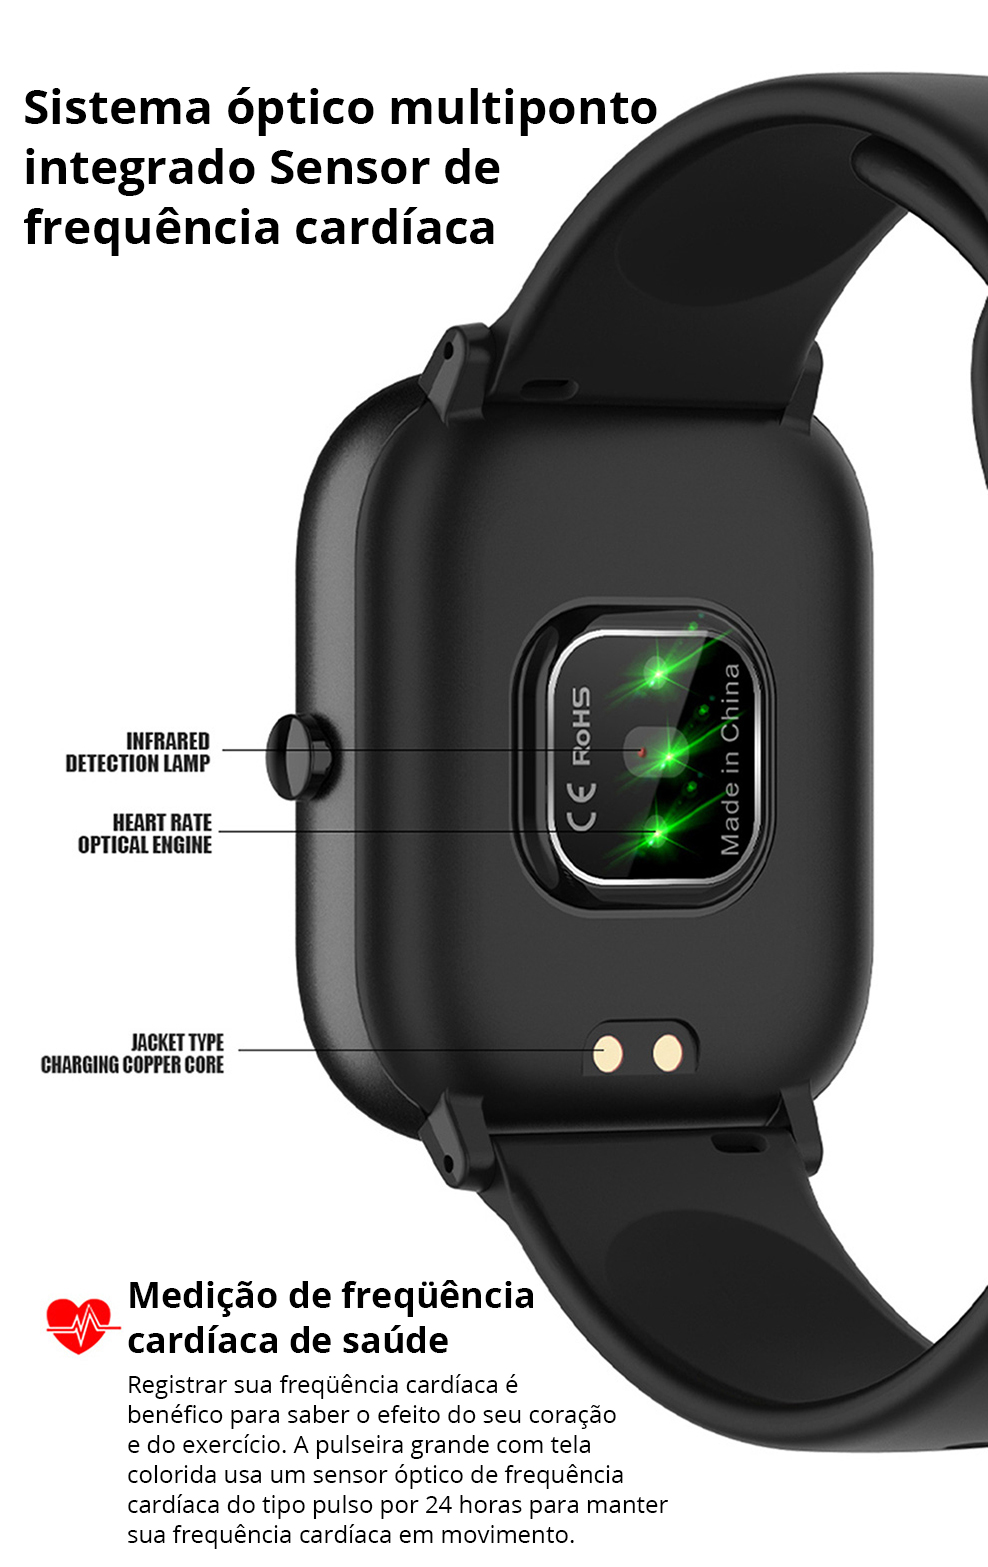 H8d72c786311242c5945294b5da28261fu SQR P8 SE Smart Watch Men Women 1.4 Inch Fitness Tracker Full Touch Screen Ip67 Waterproof Heart Rate Monitor for iOS Android